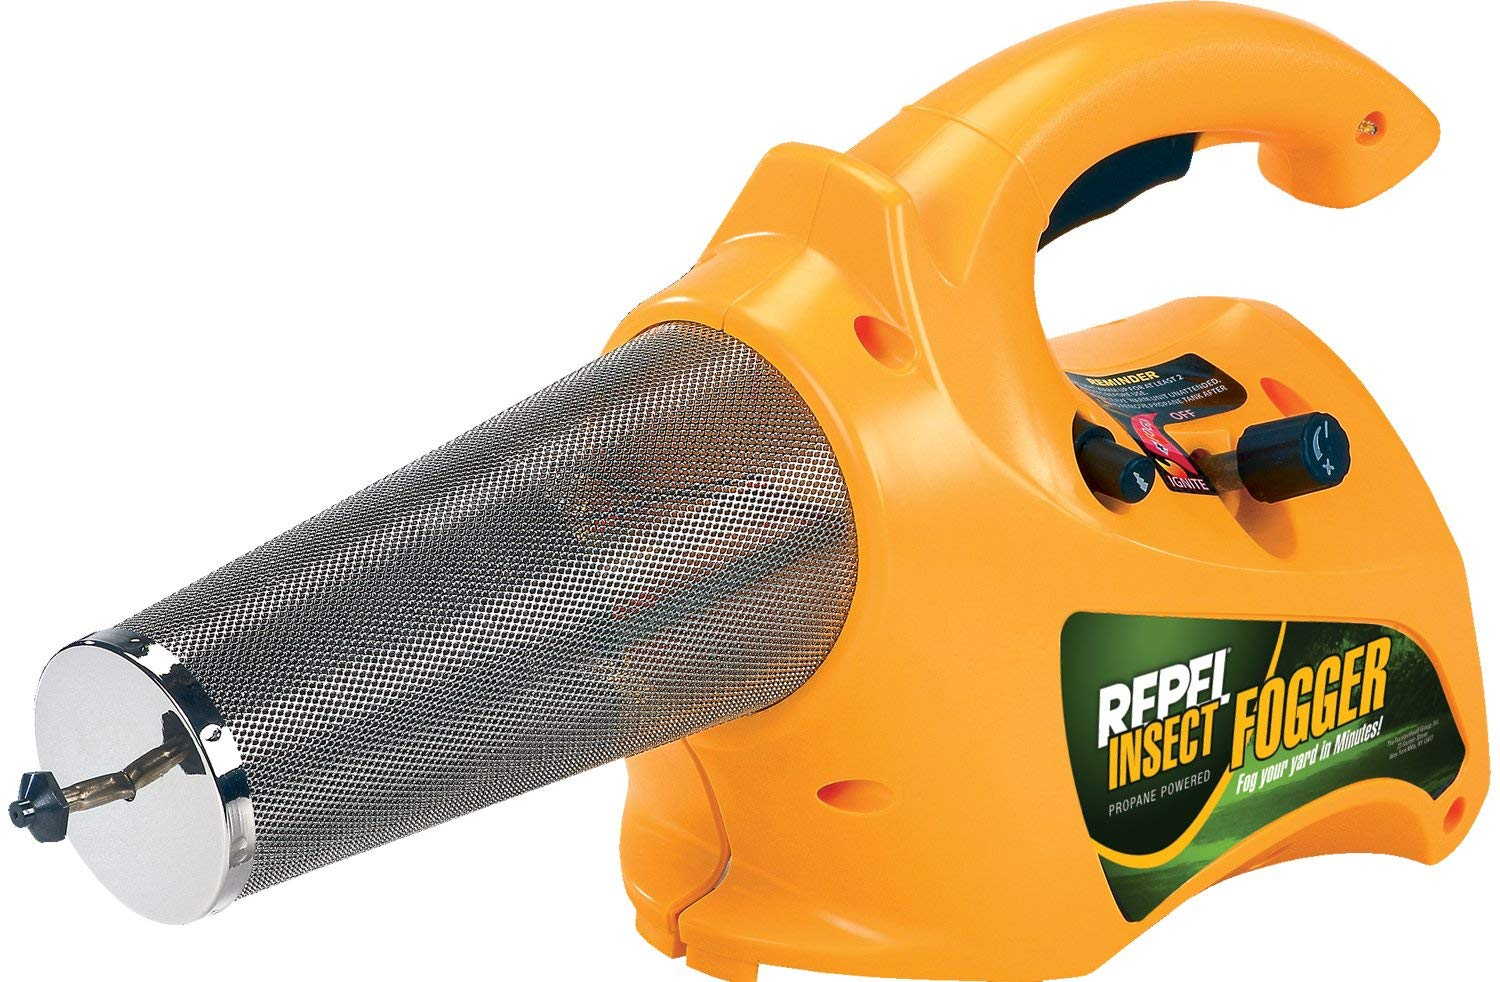 Repel 190397 Propane Insect Fogger for Killing and Repelling Mosquitoes, Flies, and Flying Insects in Your Campsite or Yard